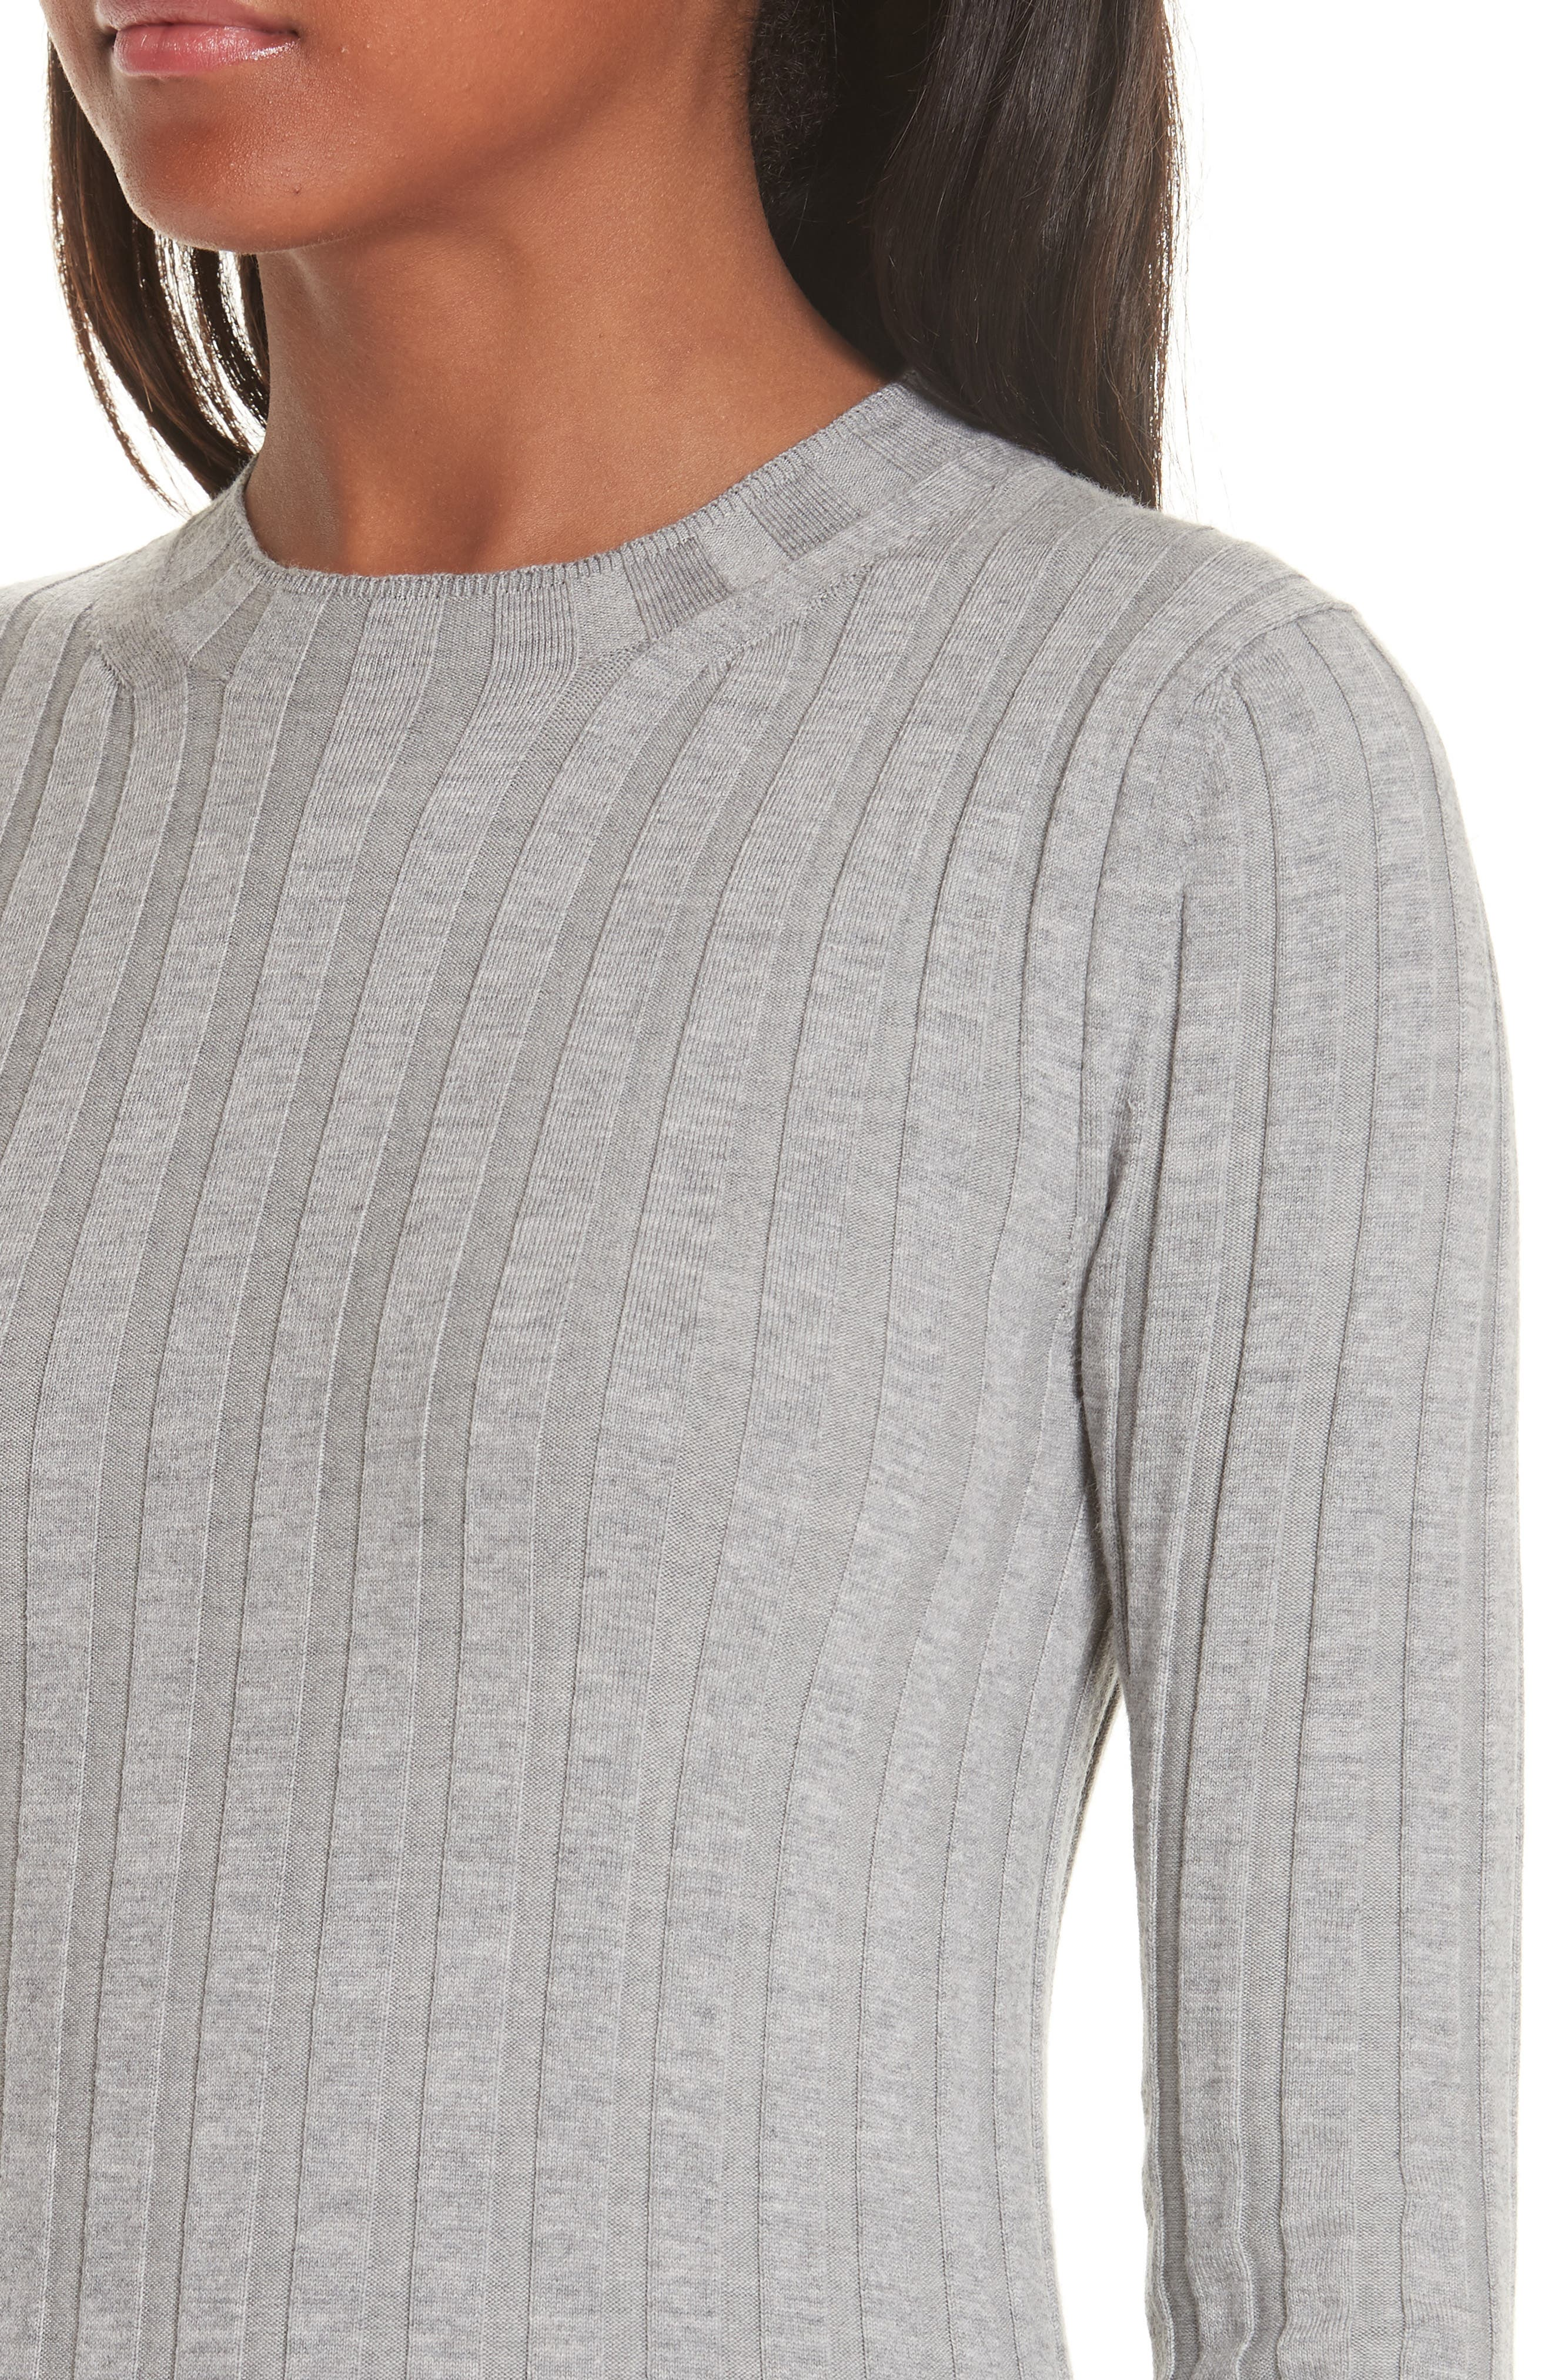 Carina Fitted Crewneck Sweater,                             Alternate thumbnail 4, color,                             SILVER GREY